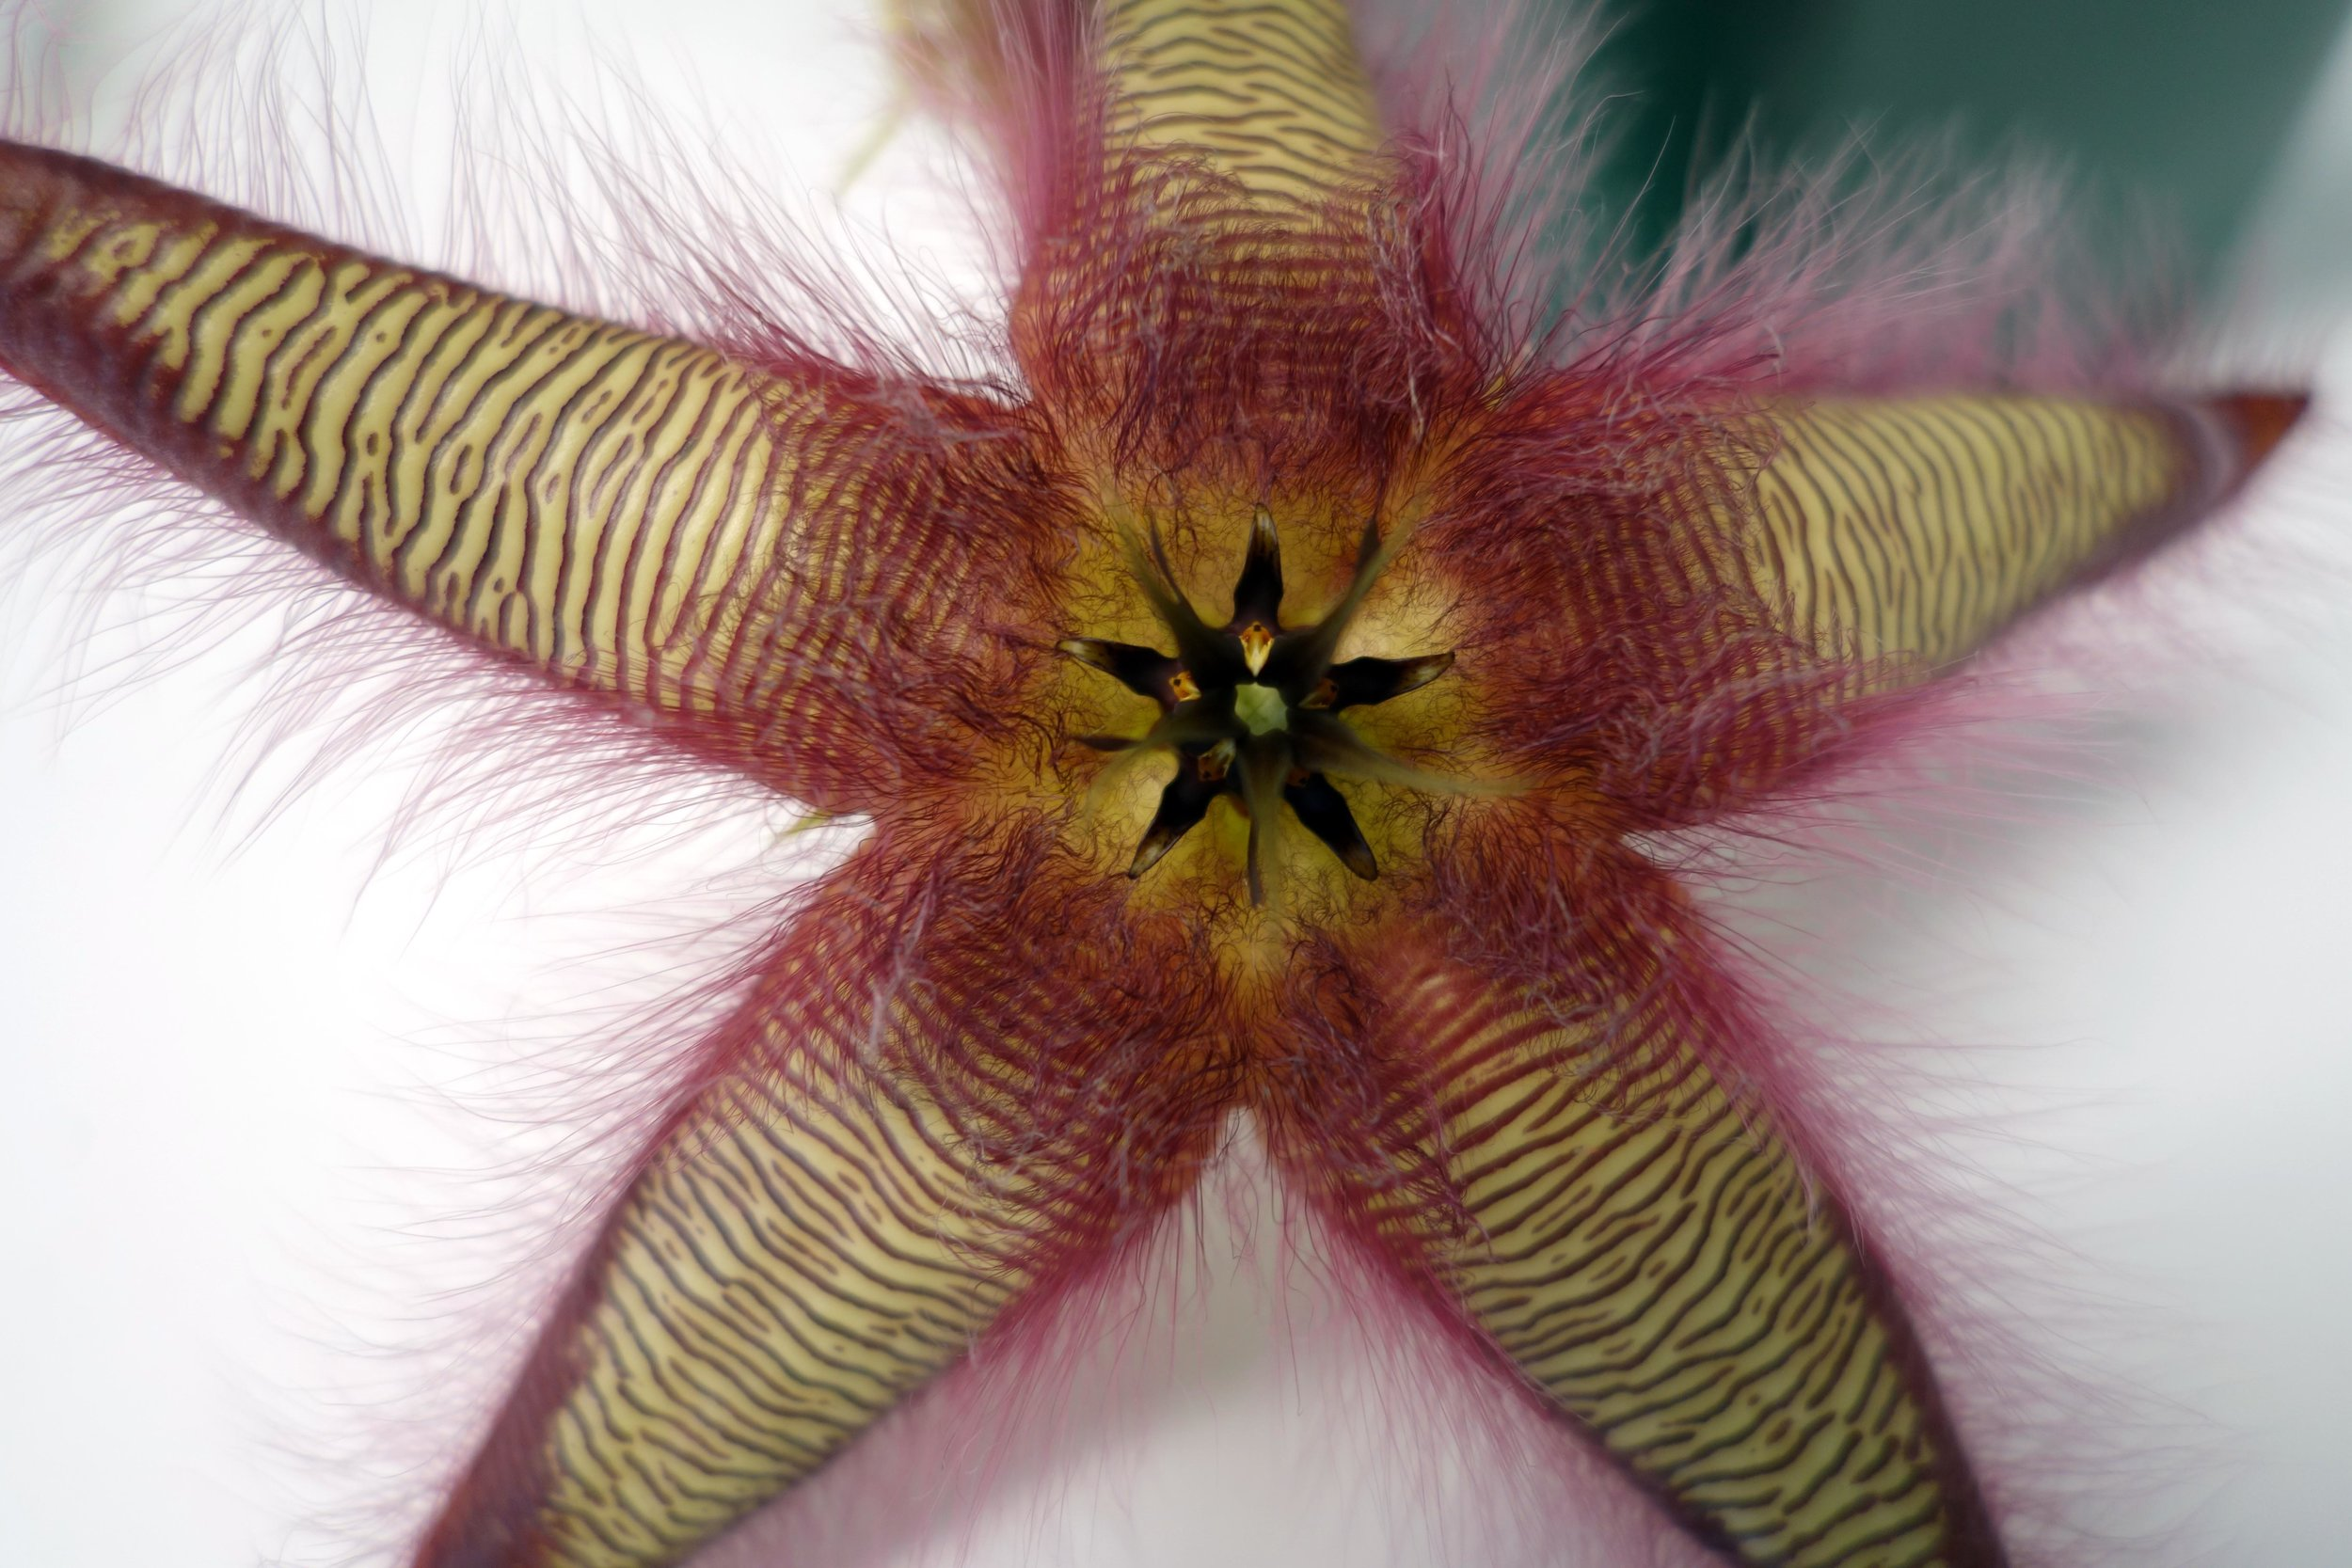 Stapelia gettleffii flower zoom 10-31-17.jpg